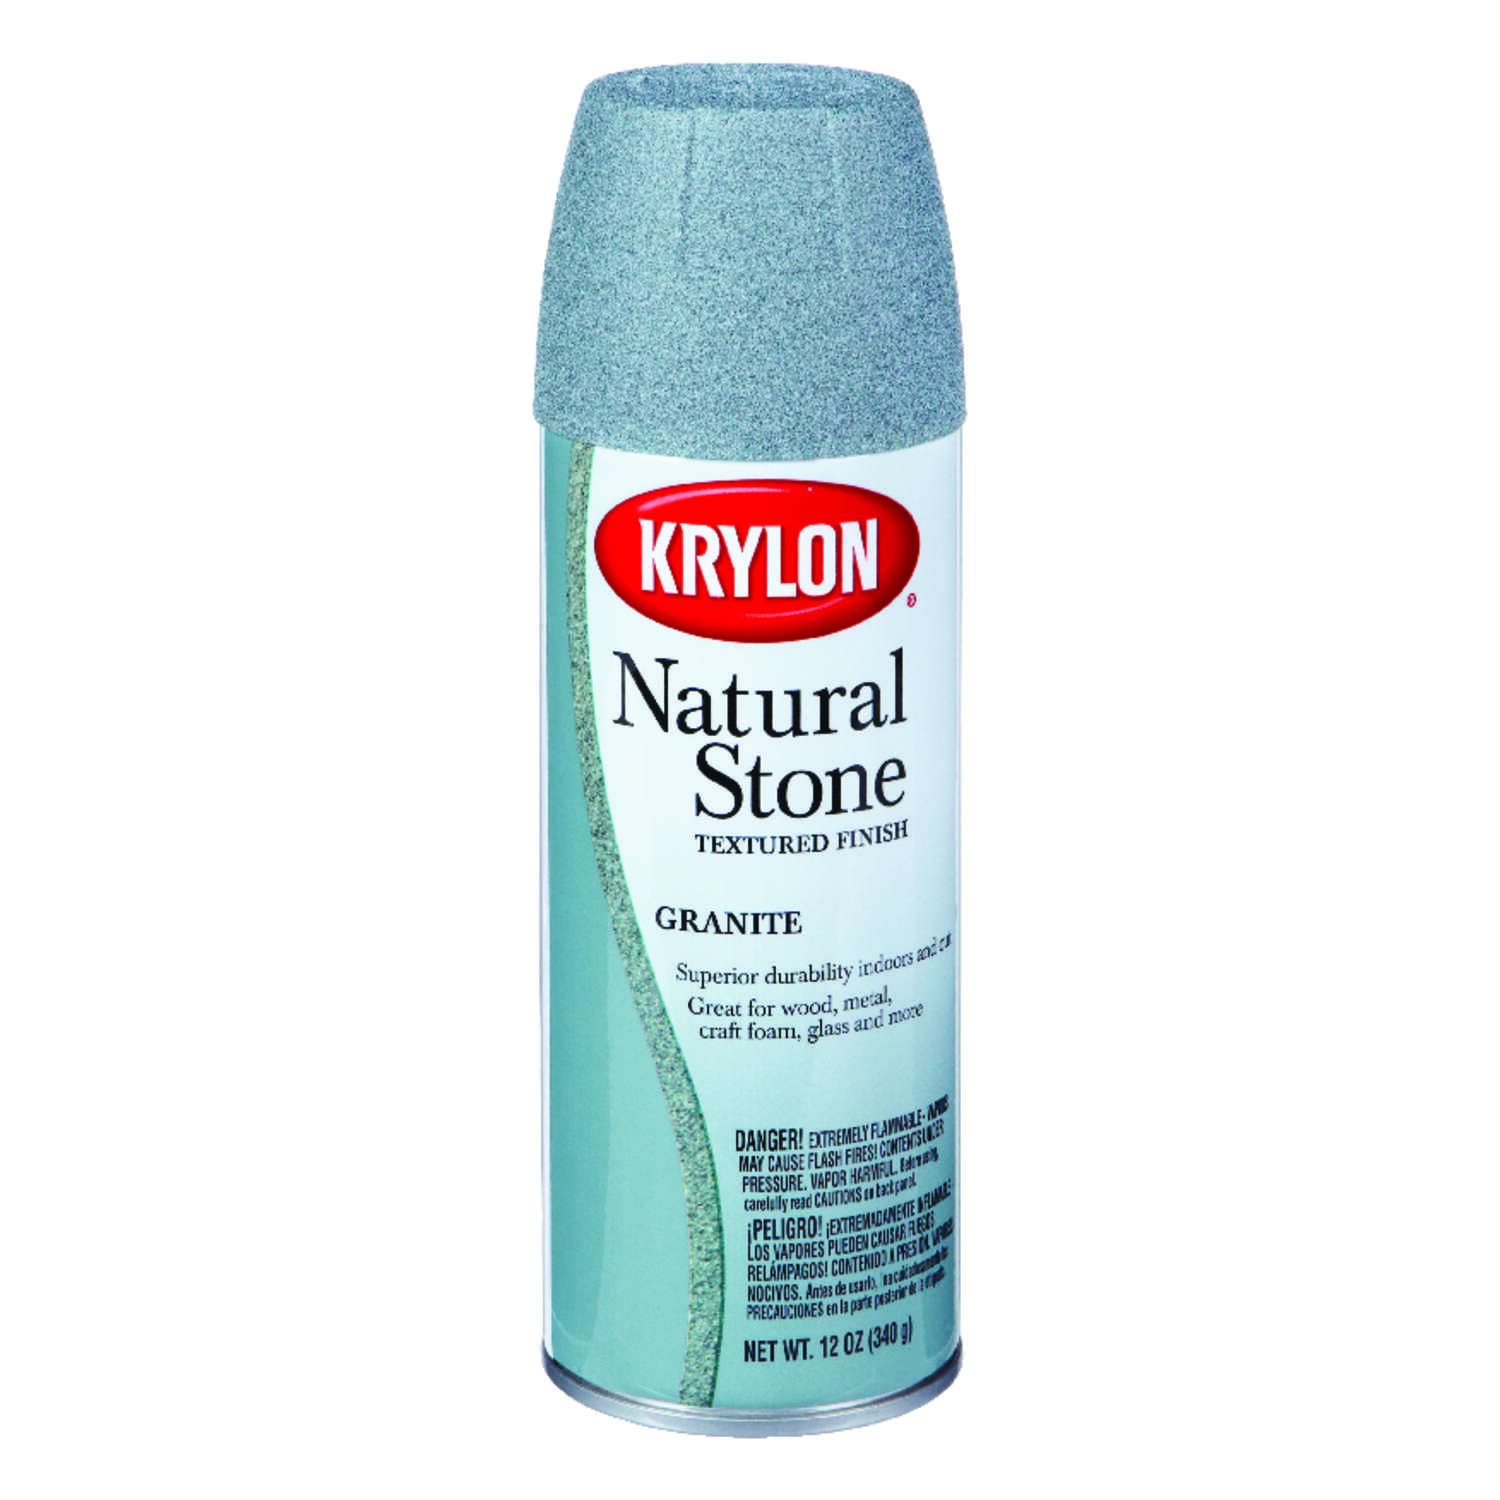 Krylon Textured Natural Stone Spray Paint Granite 12 oz Ace Hardware